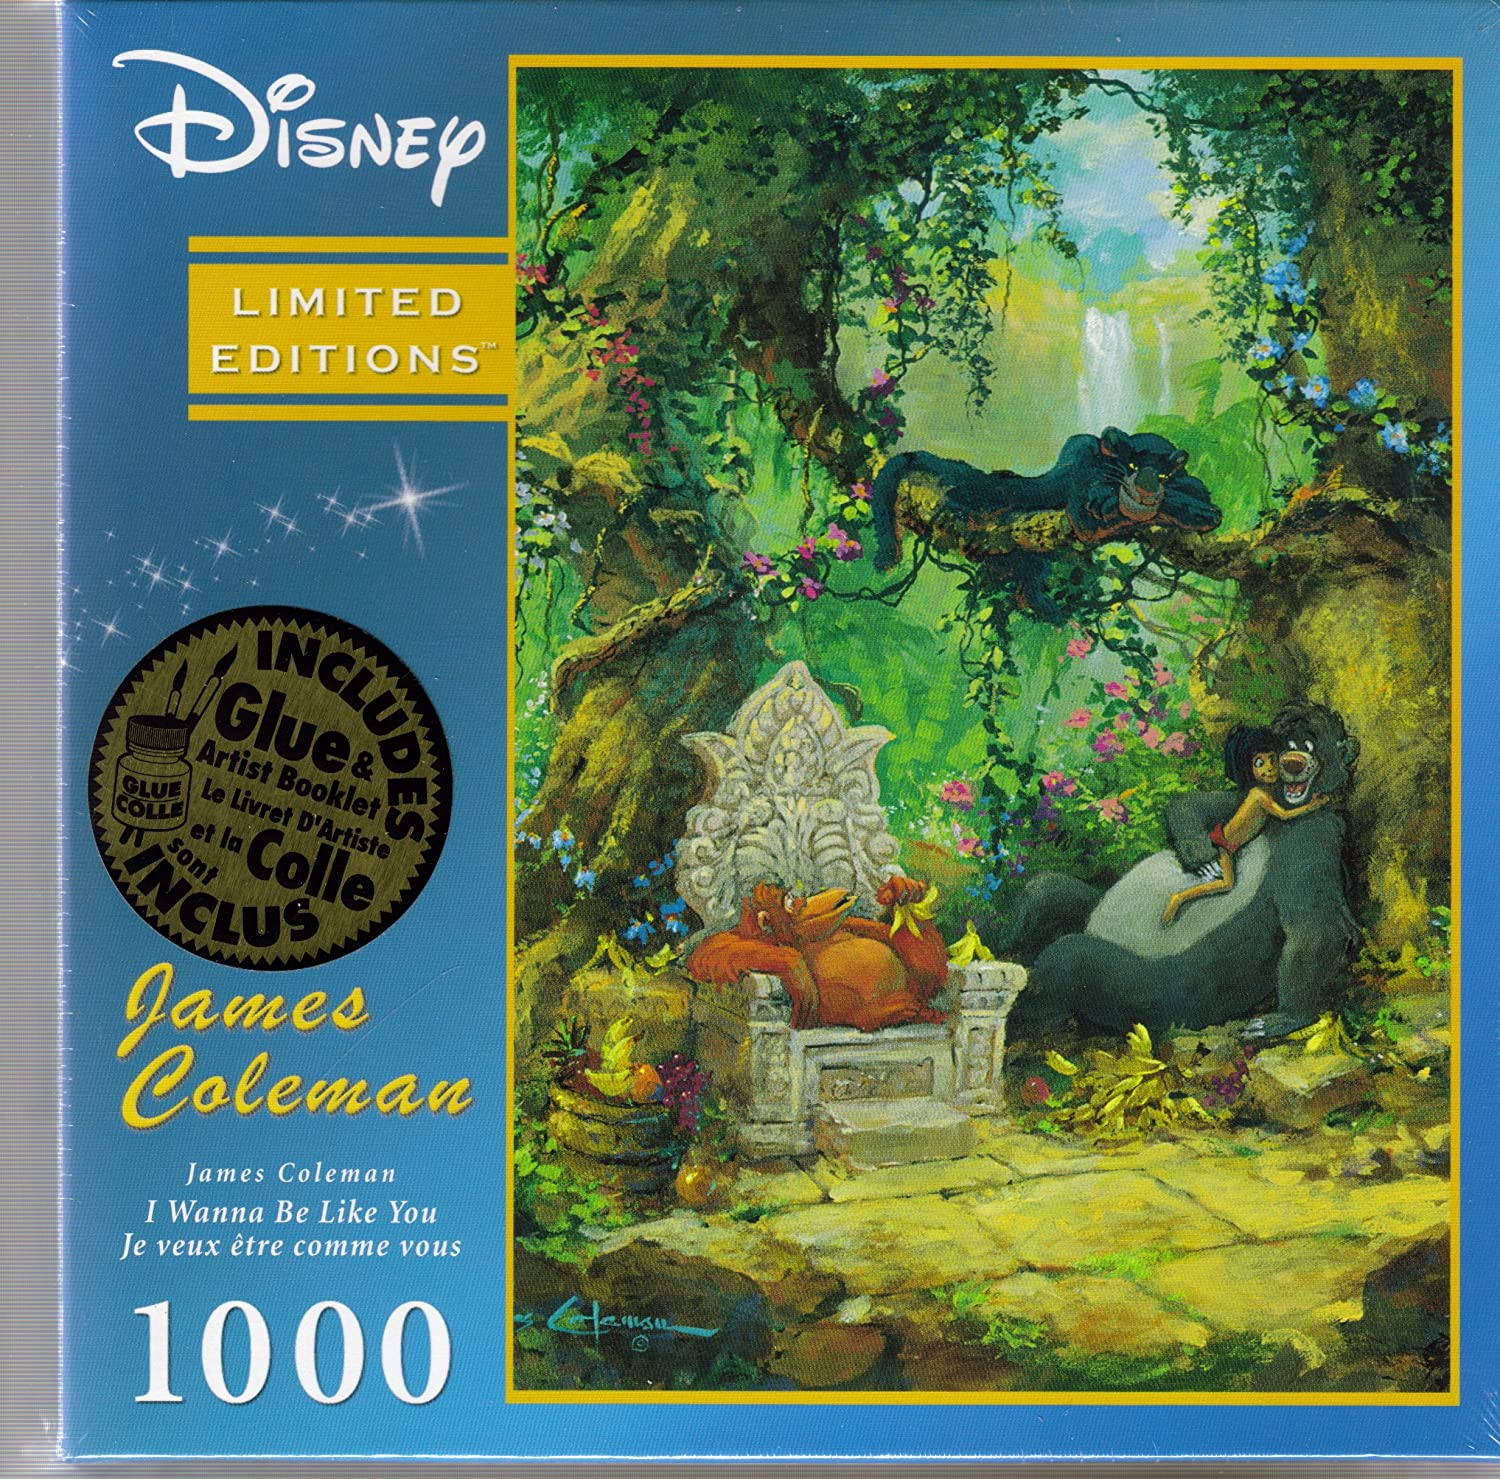 Disneys Limited Editions I Wannna Be Like You 1000 Piece Jigsaw Puzzle w  Artist Booklet & Glue